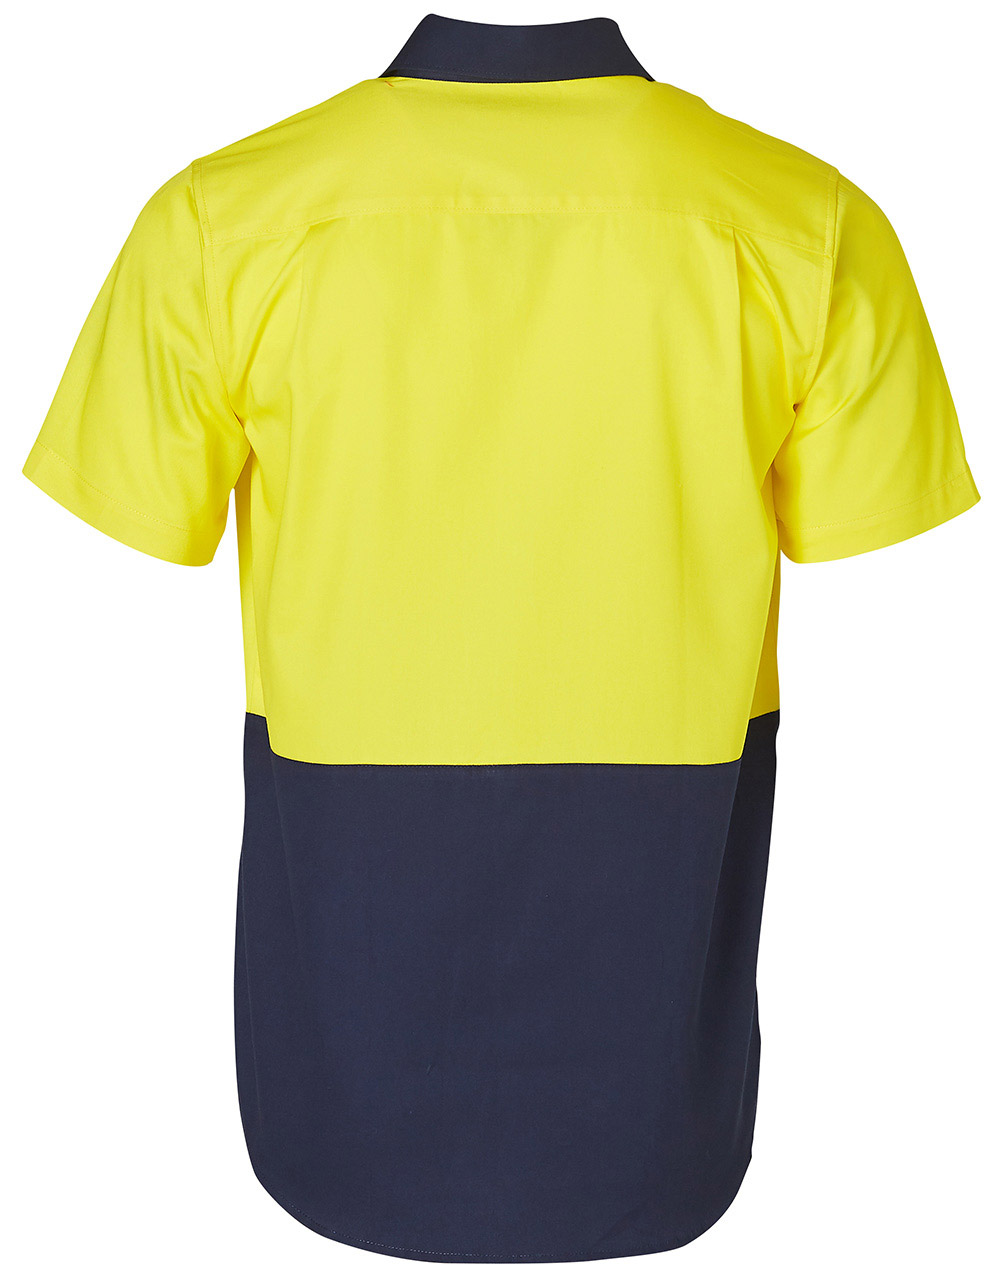 https://s3-ap-southeast-1.amazonaws.com/ws-imgs/WORKWEAR/SW53_YellowNavy_Back.jpg